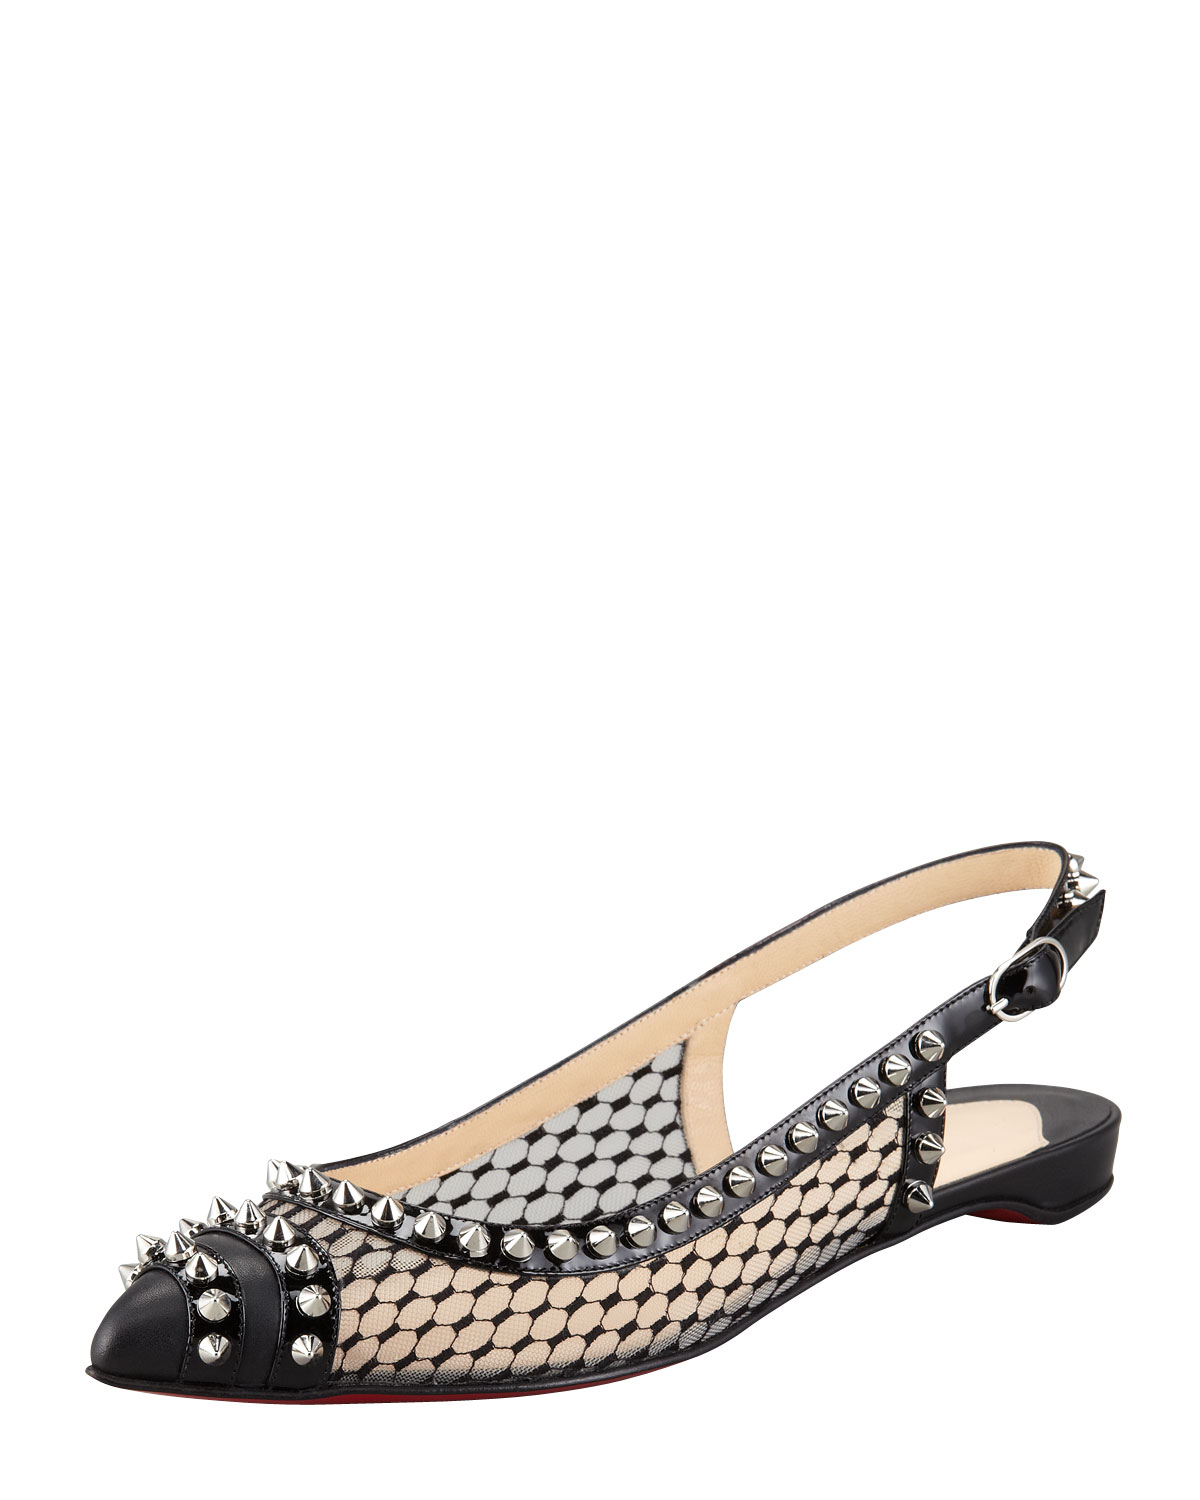 louboutin loafers - christian louboutin spiked mesh flats, fake louboutin shoes